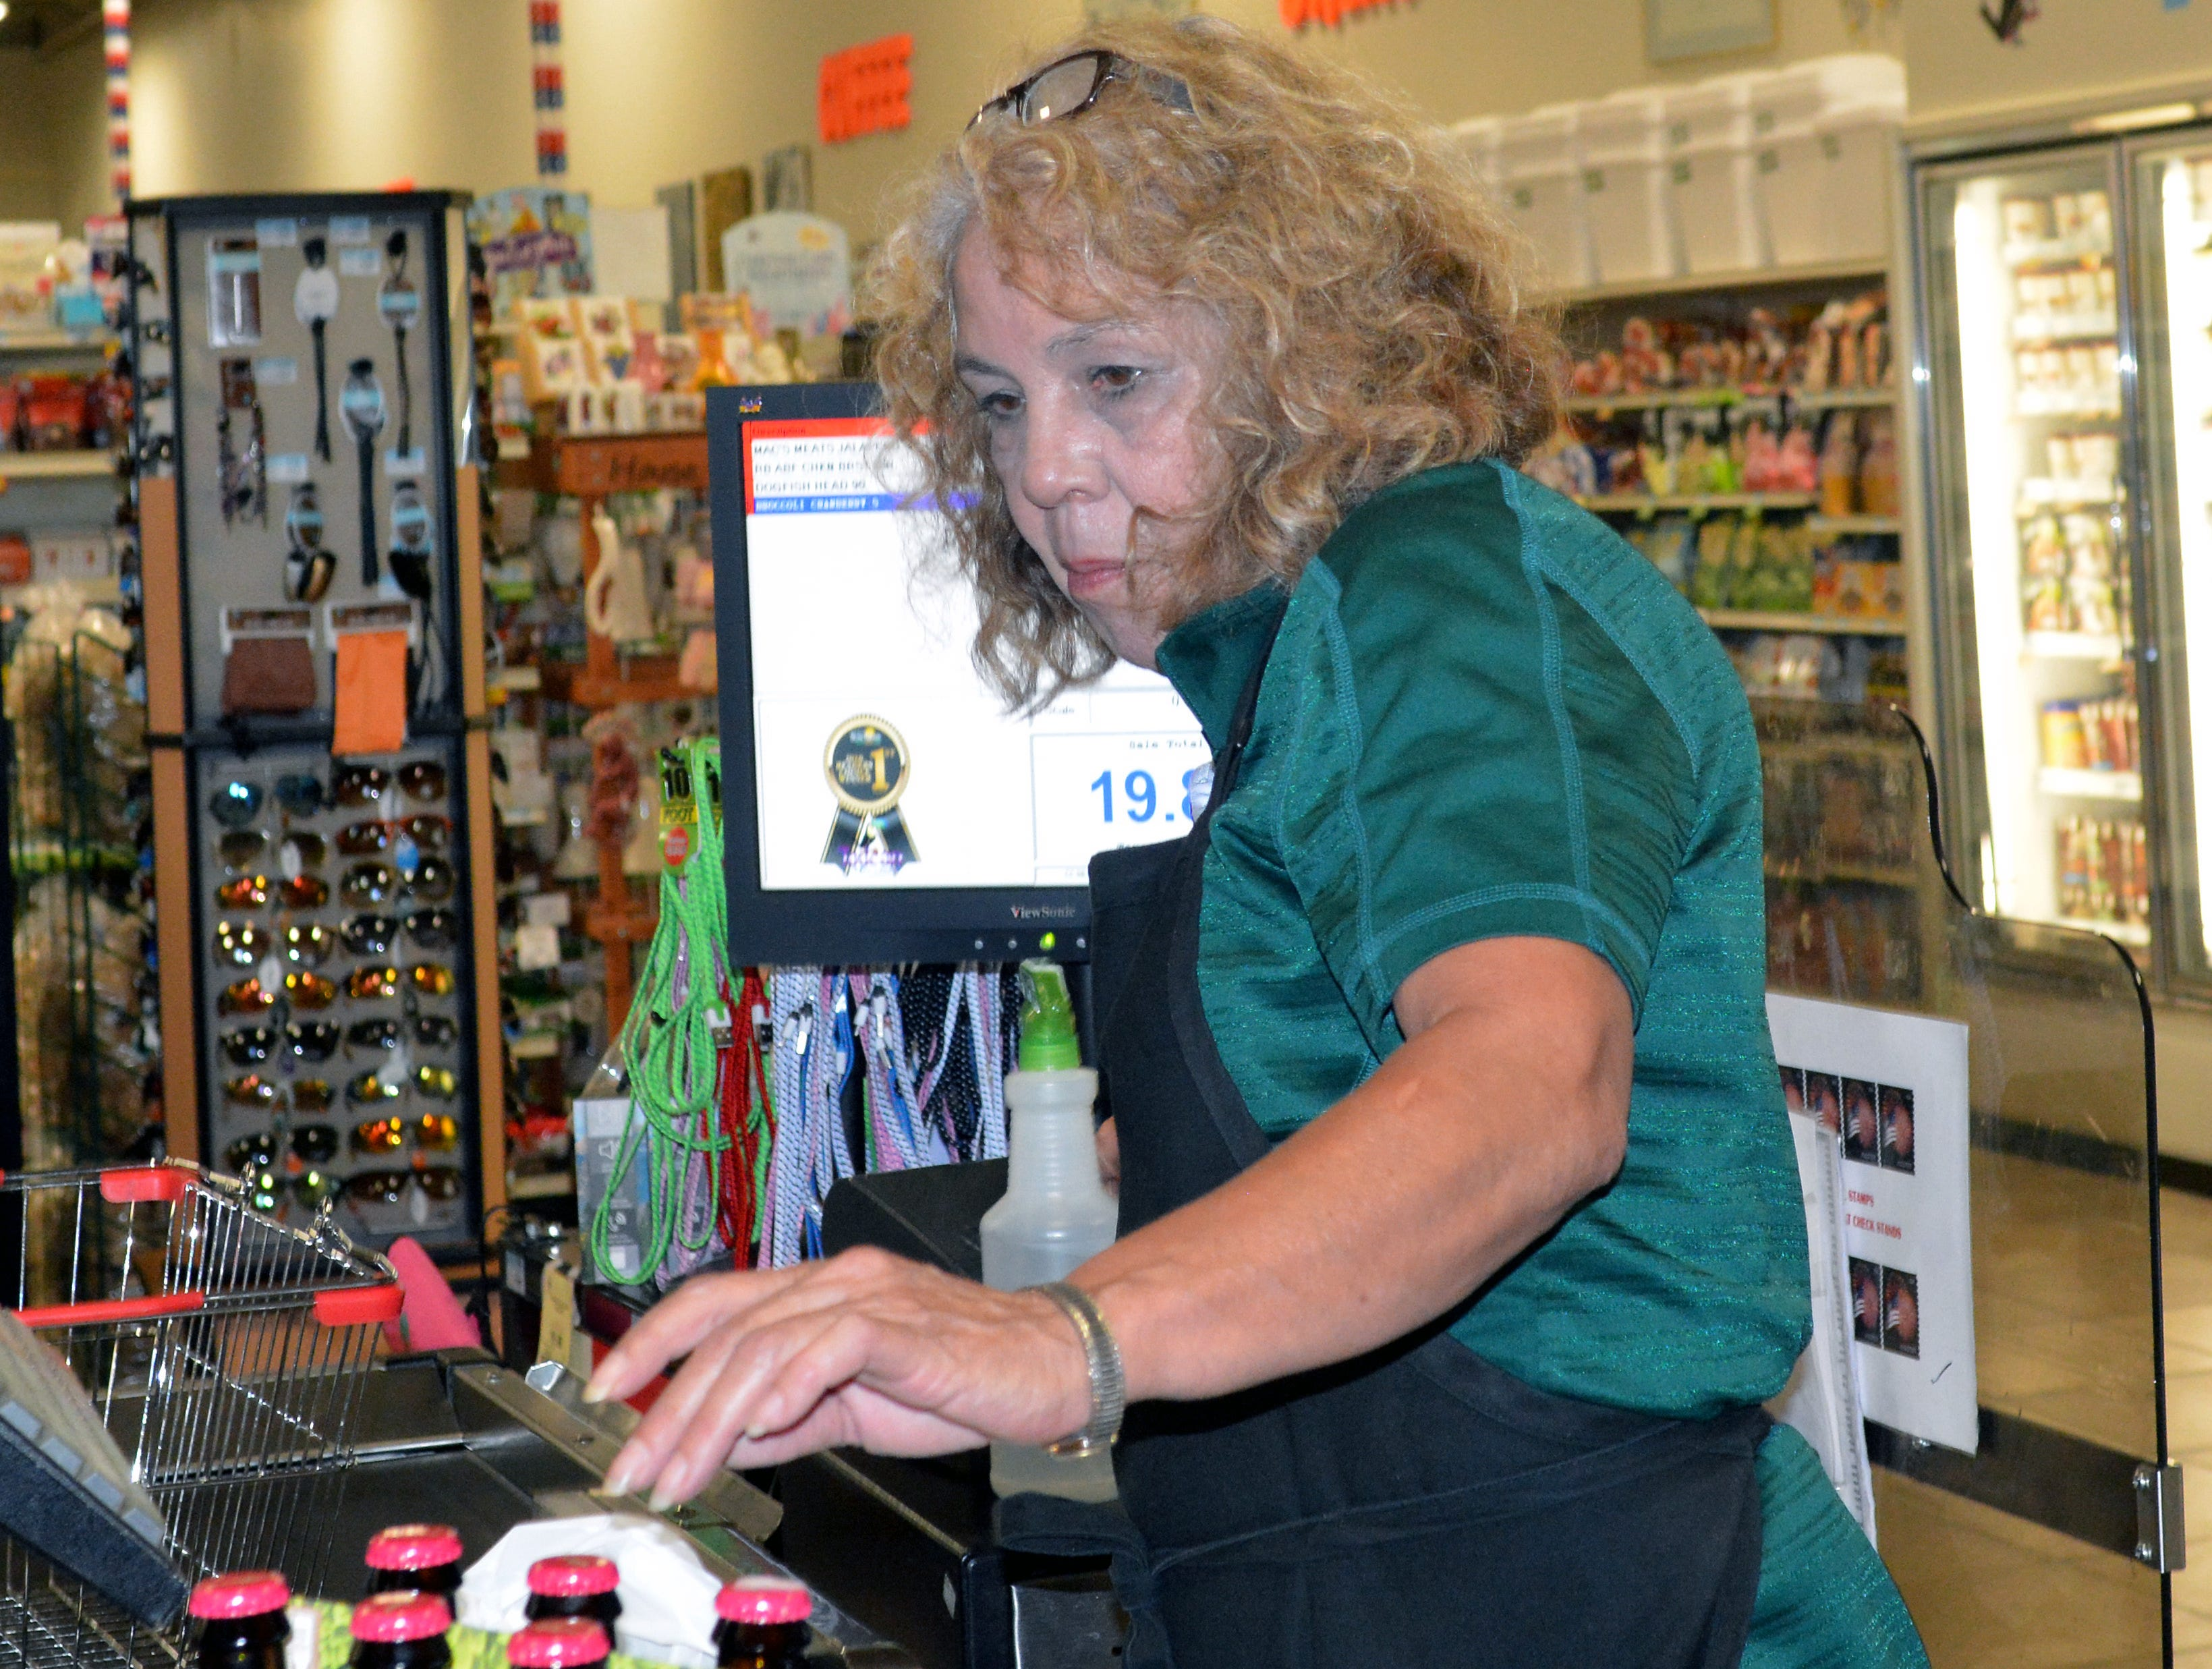 Toucan Market cashier Donna Villarreal has been working at the store for 13 years. She checked out groceries on August 29, 2018.